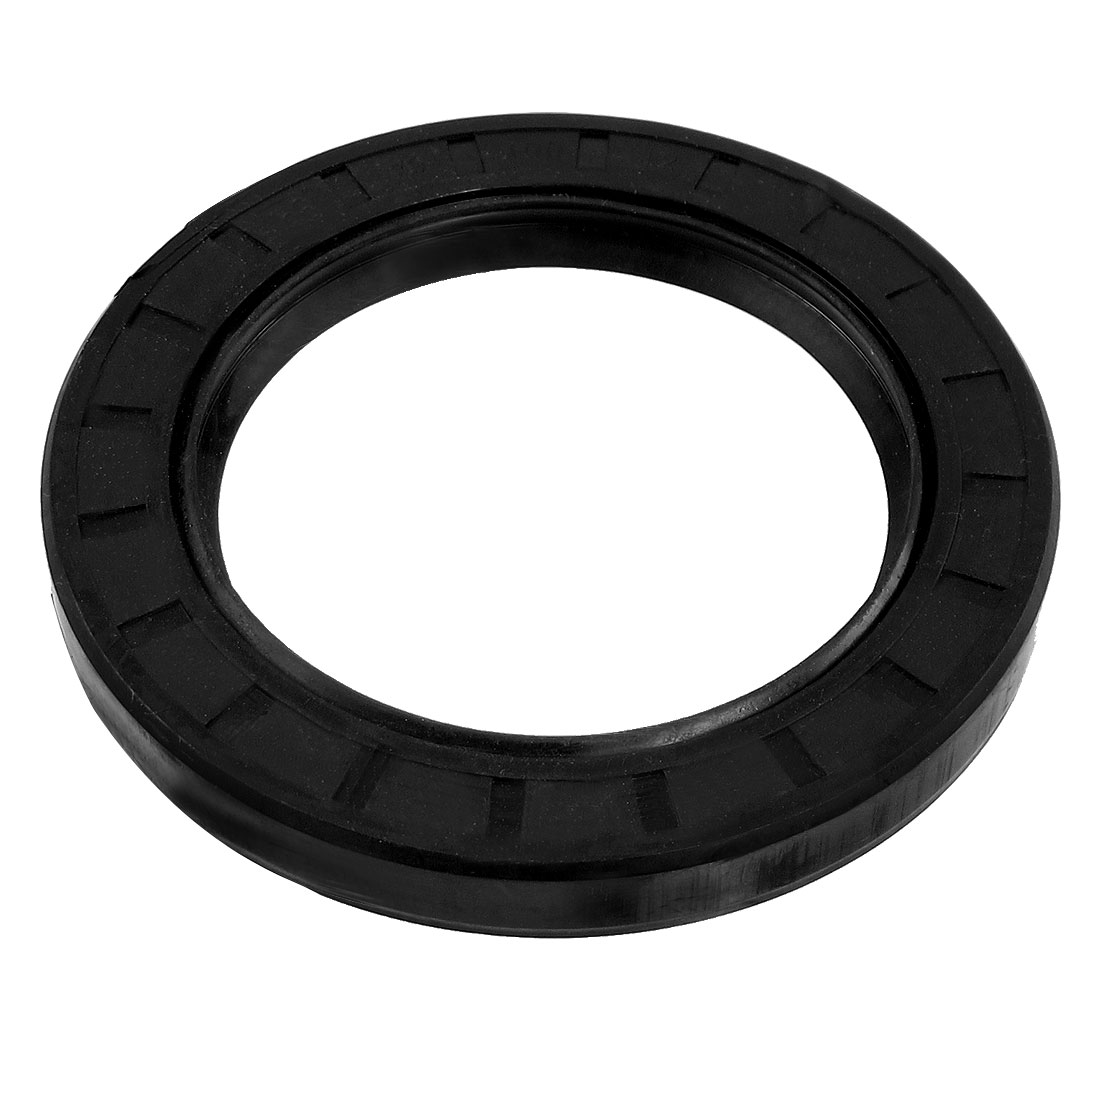 Steel Spring NBR Double Lip TC Oil Seal Black 70mm x 100mm x 12mm